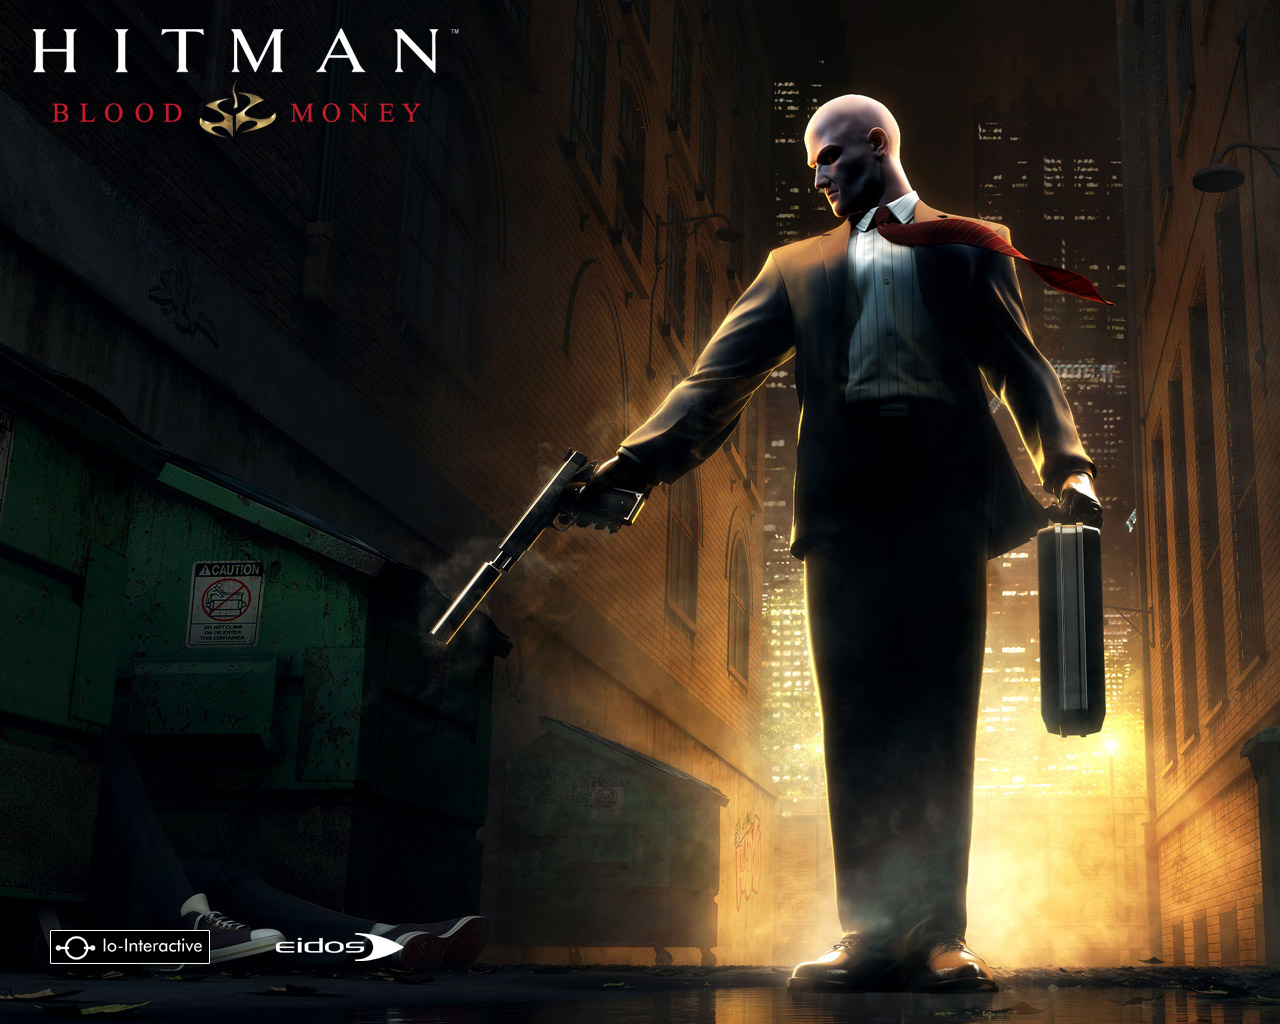 Hitman New Hd Wallpapers High Resolution All Hd Wallpapers